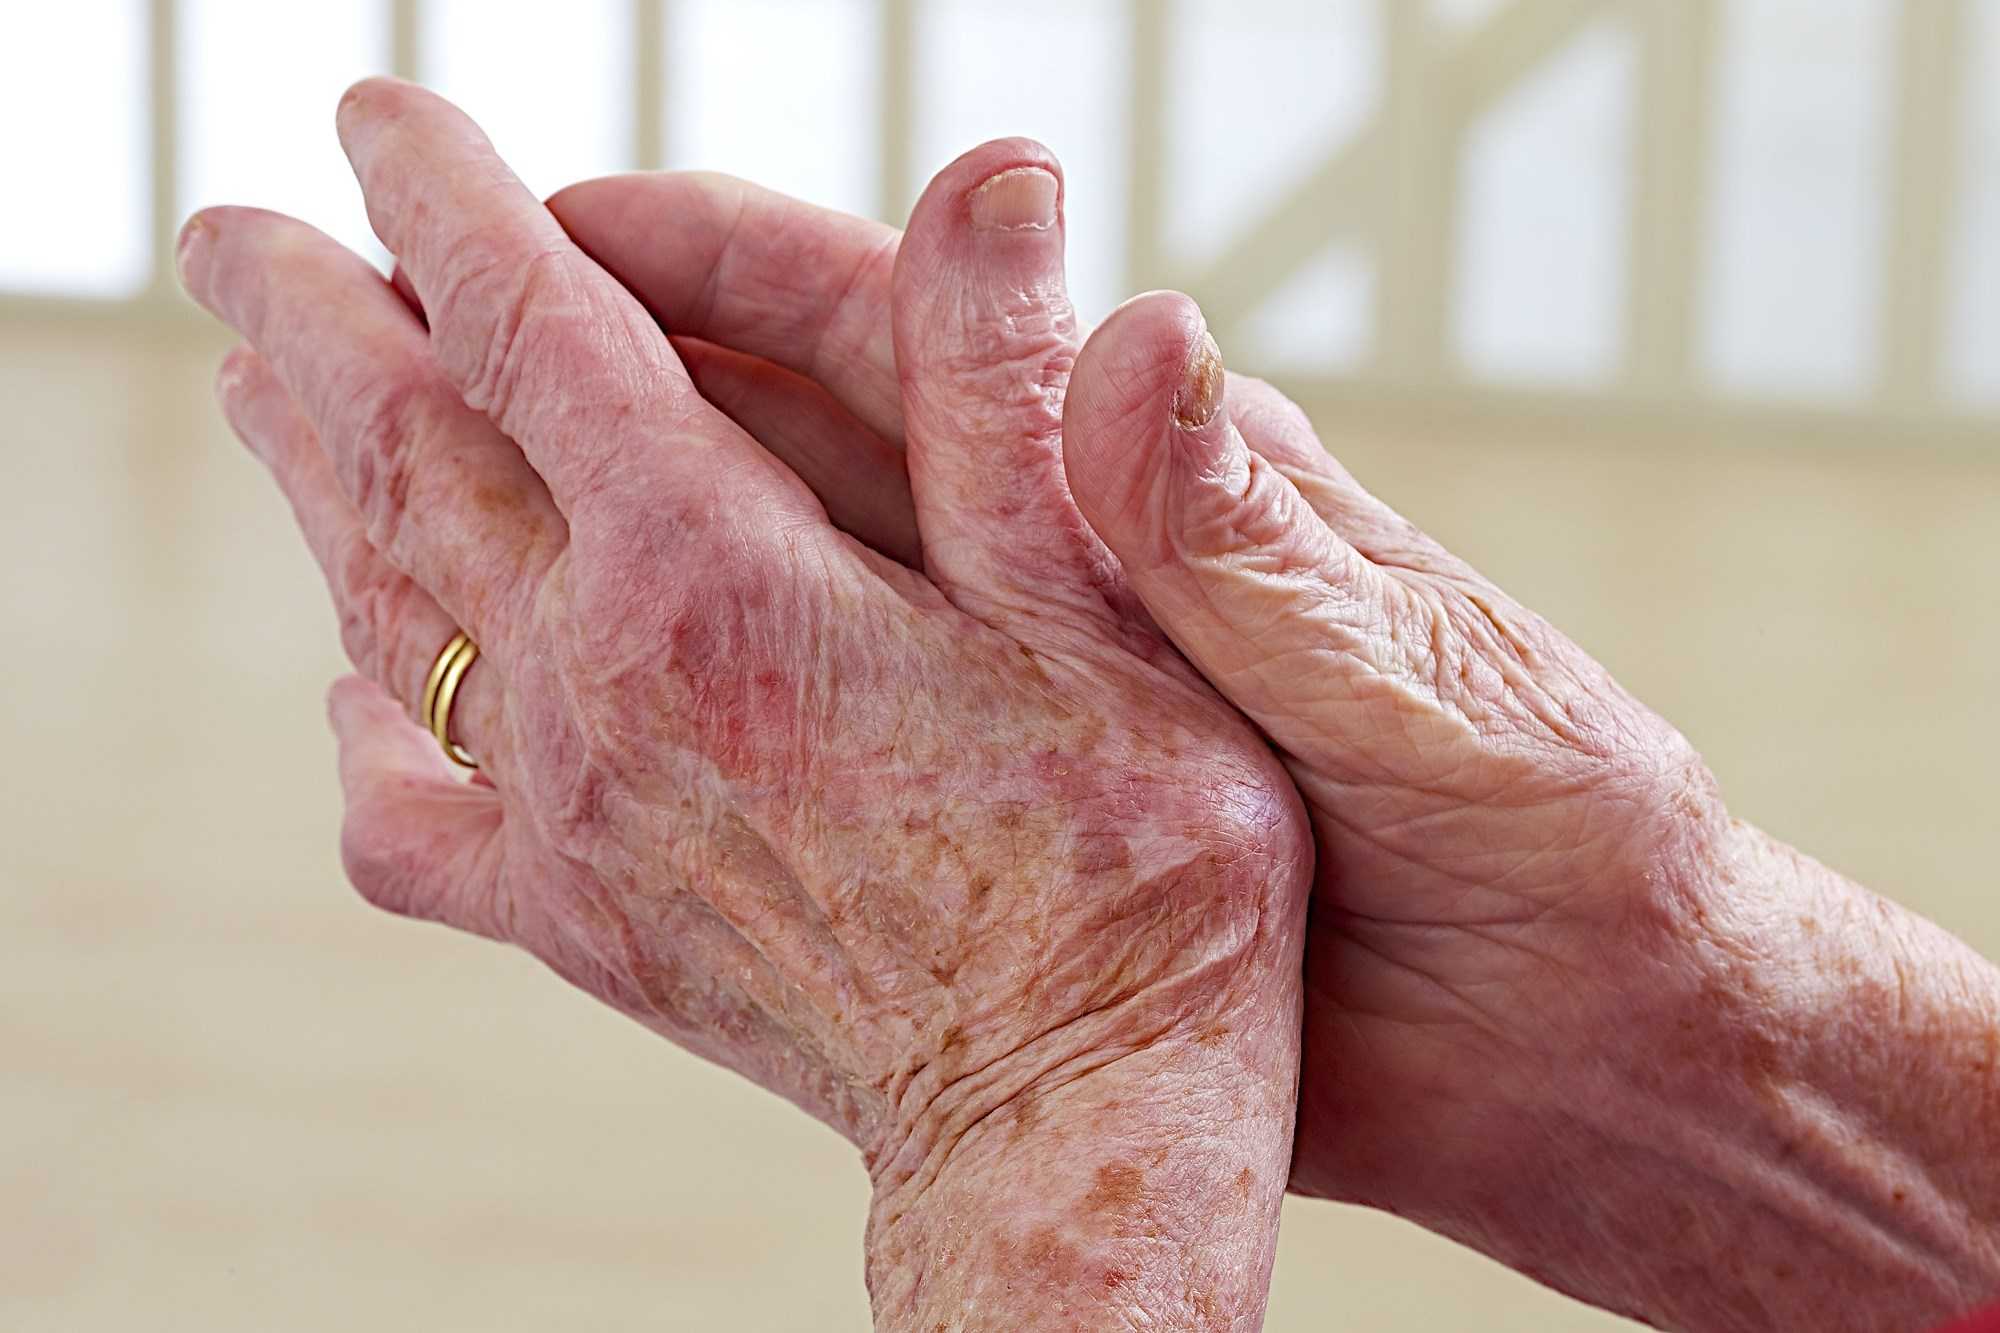 The task force has issued 10 updated recommendations for the management of hand osteoarthritis.